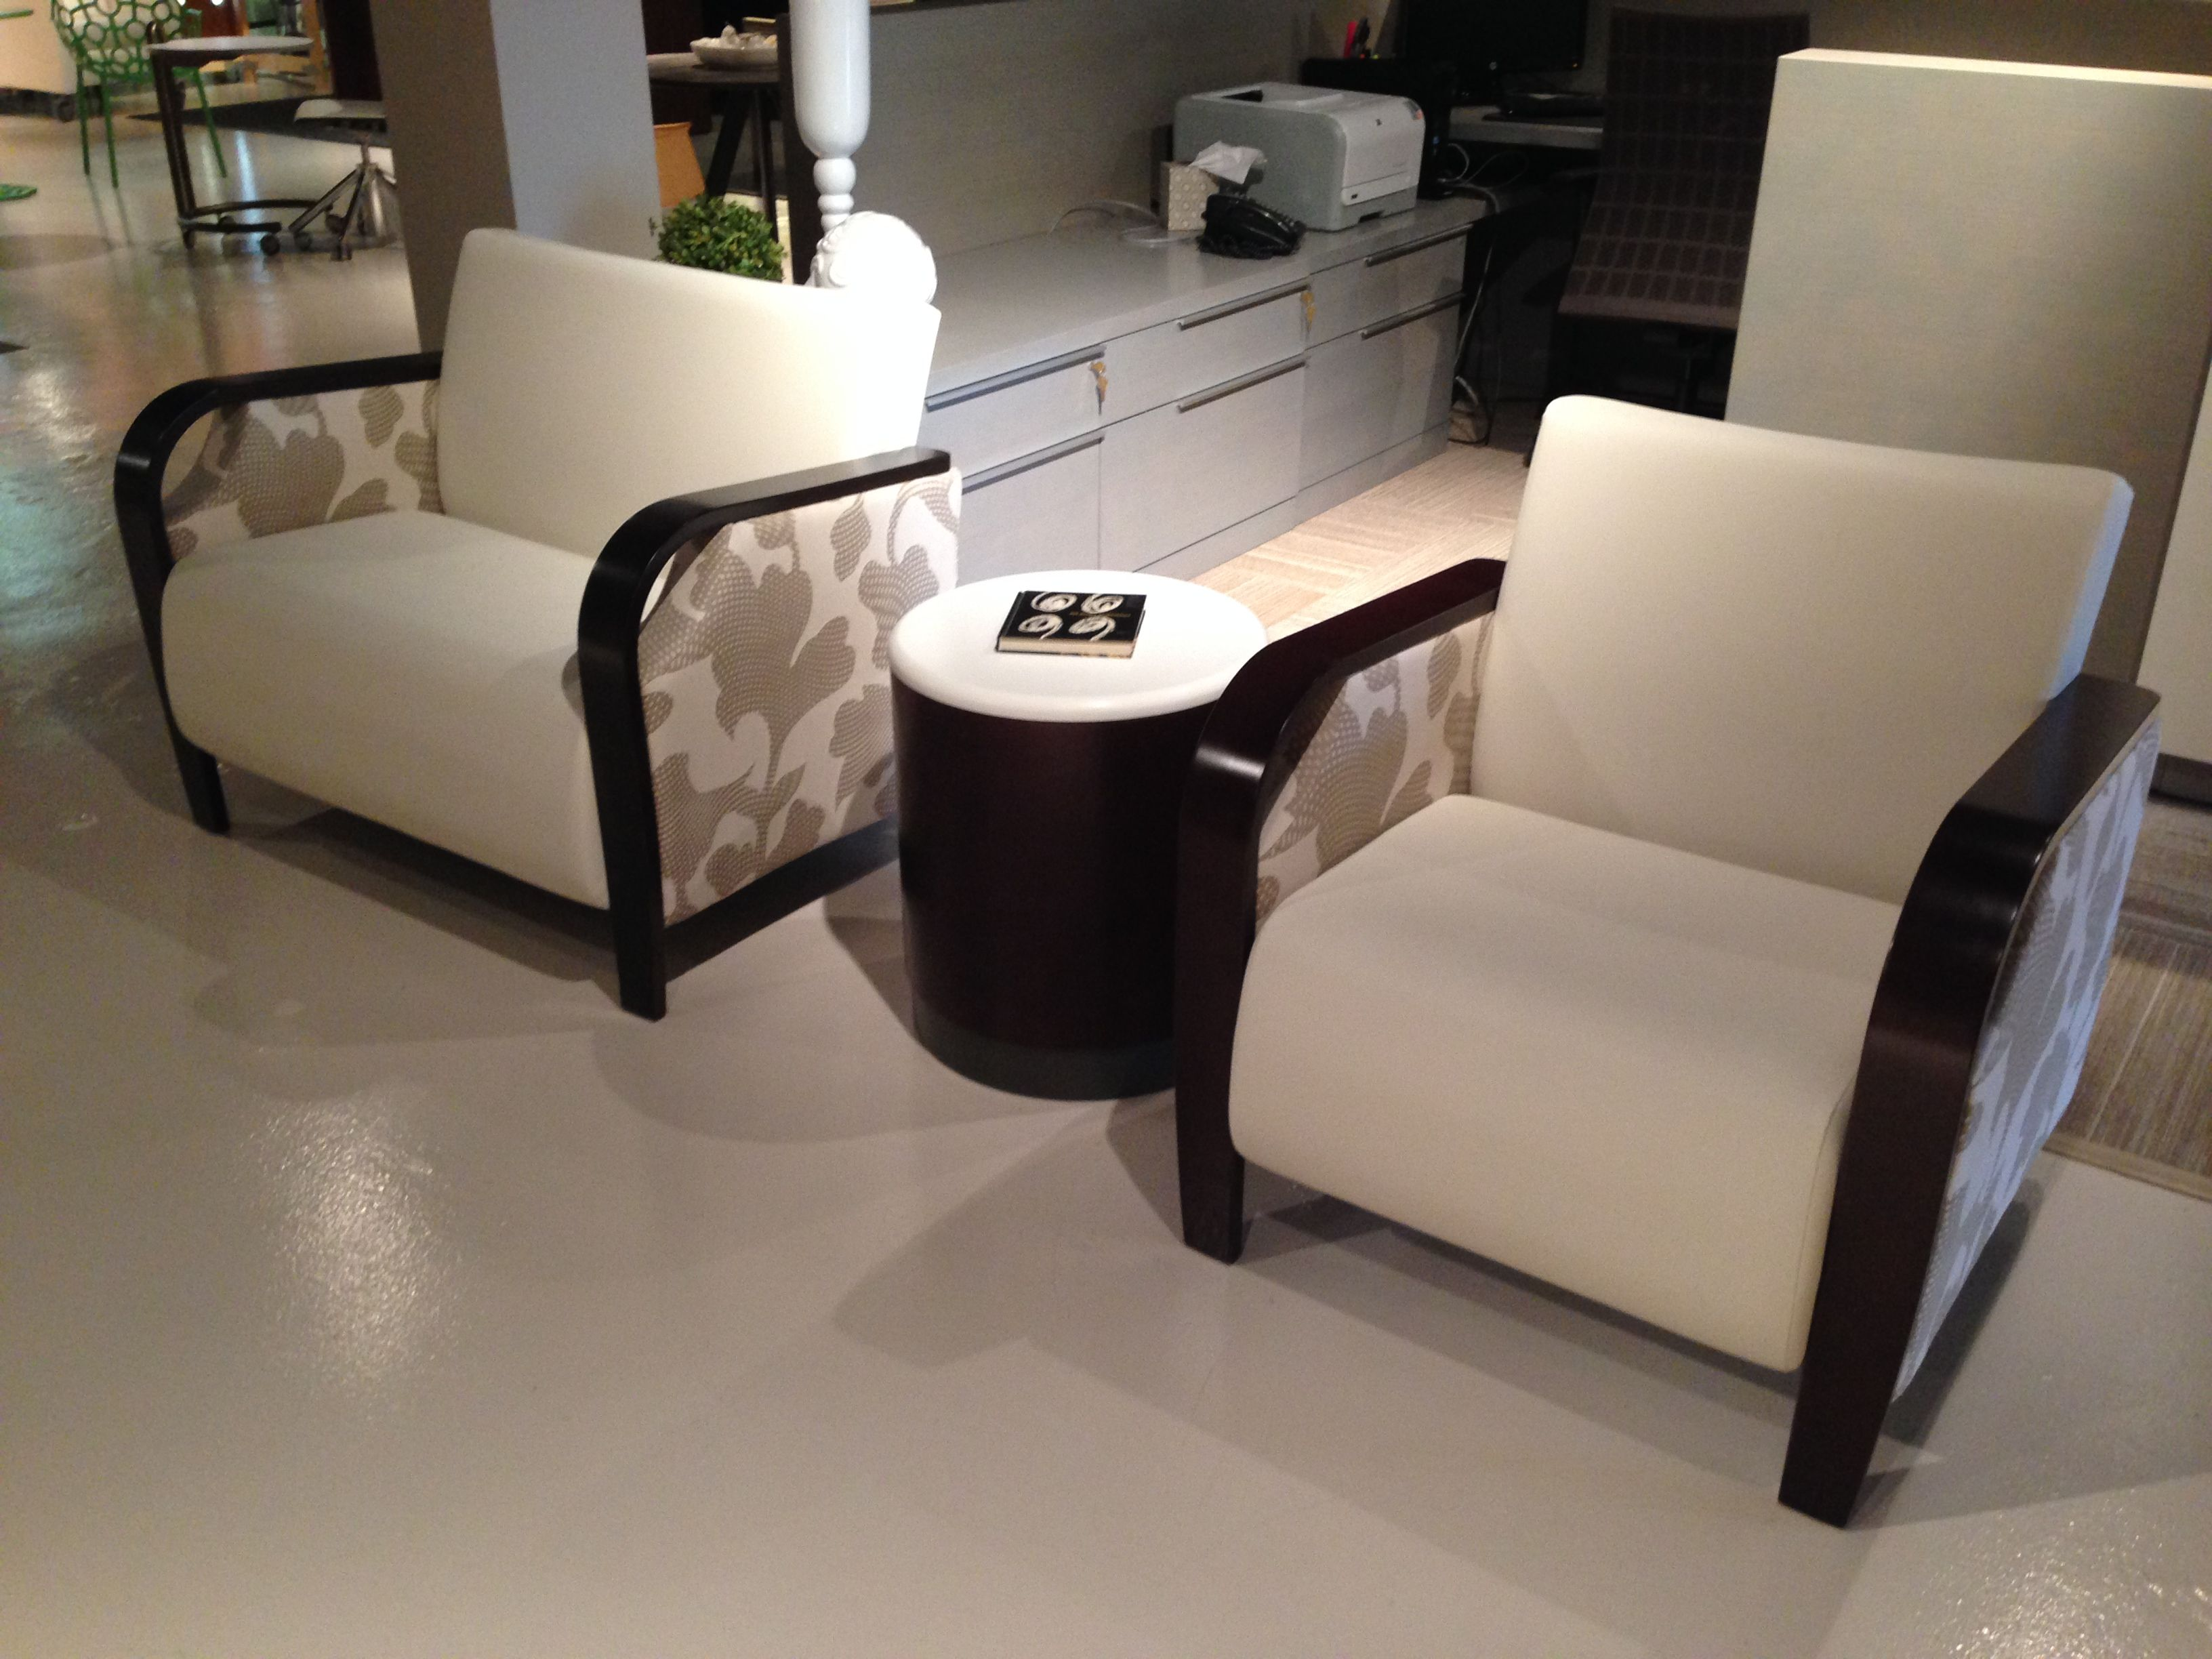 Pleasing New Showroom Samples In Dallas Krug Cressida Lounge Seating Evergreenethics Interior Chair Design Evergreenethicsorg